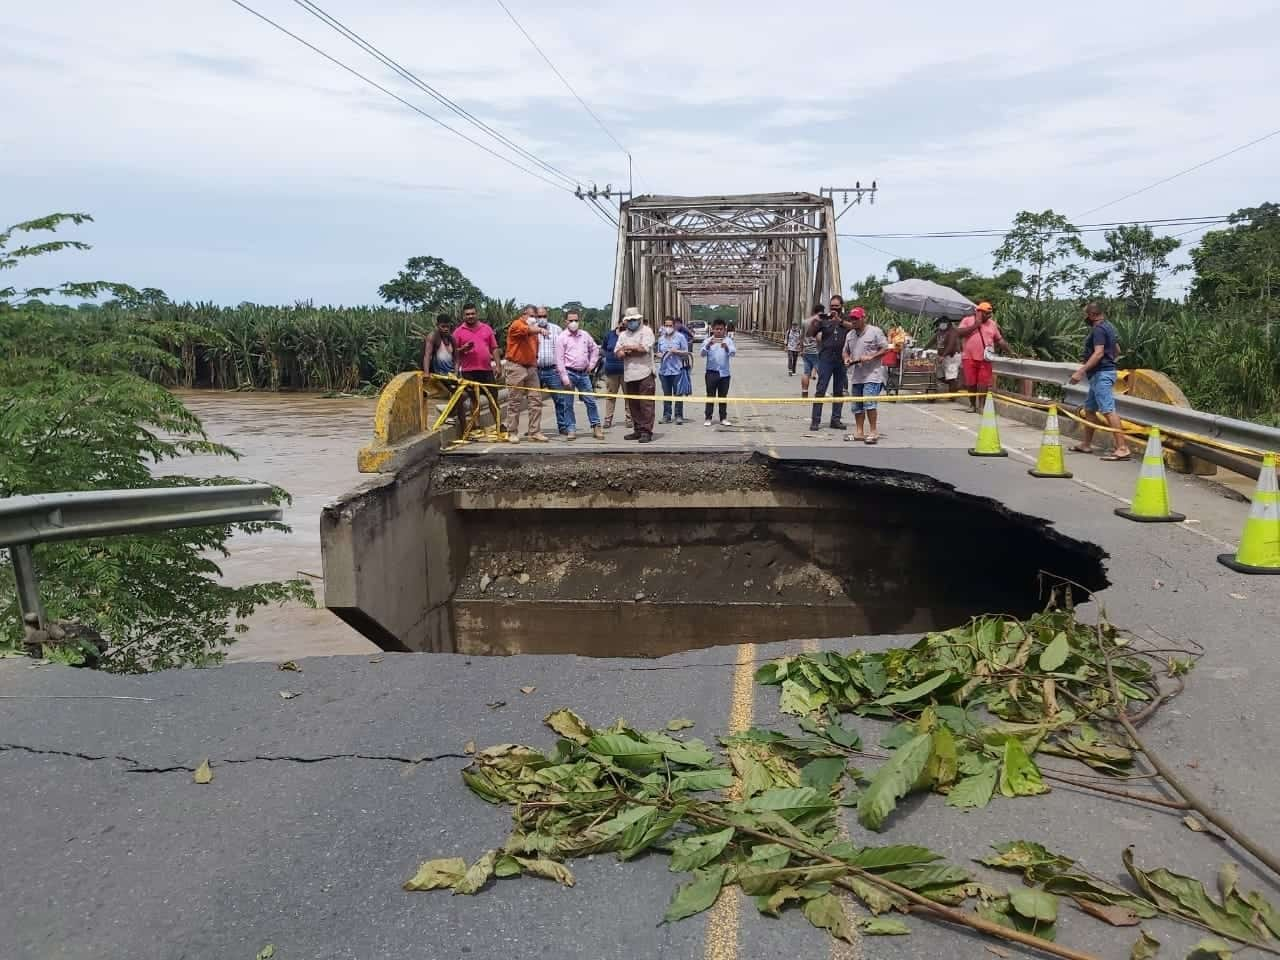 Damage at a bridge on Route 36 in the Costa Rican Caribbean.